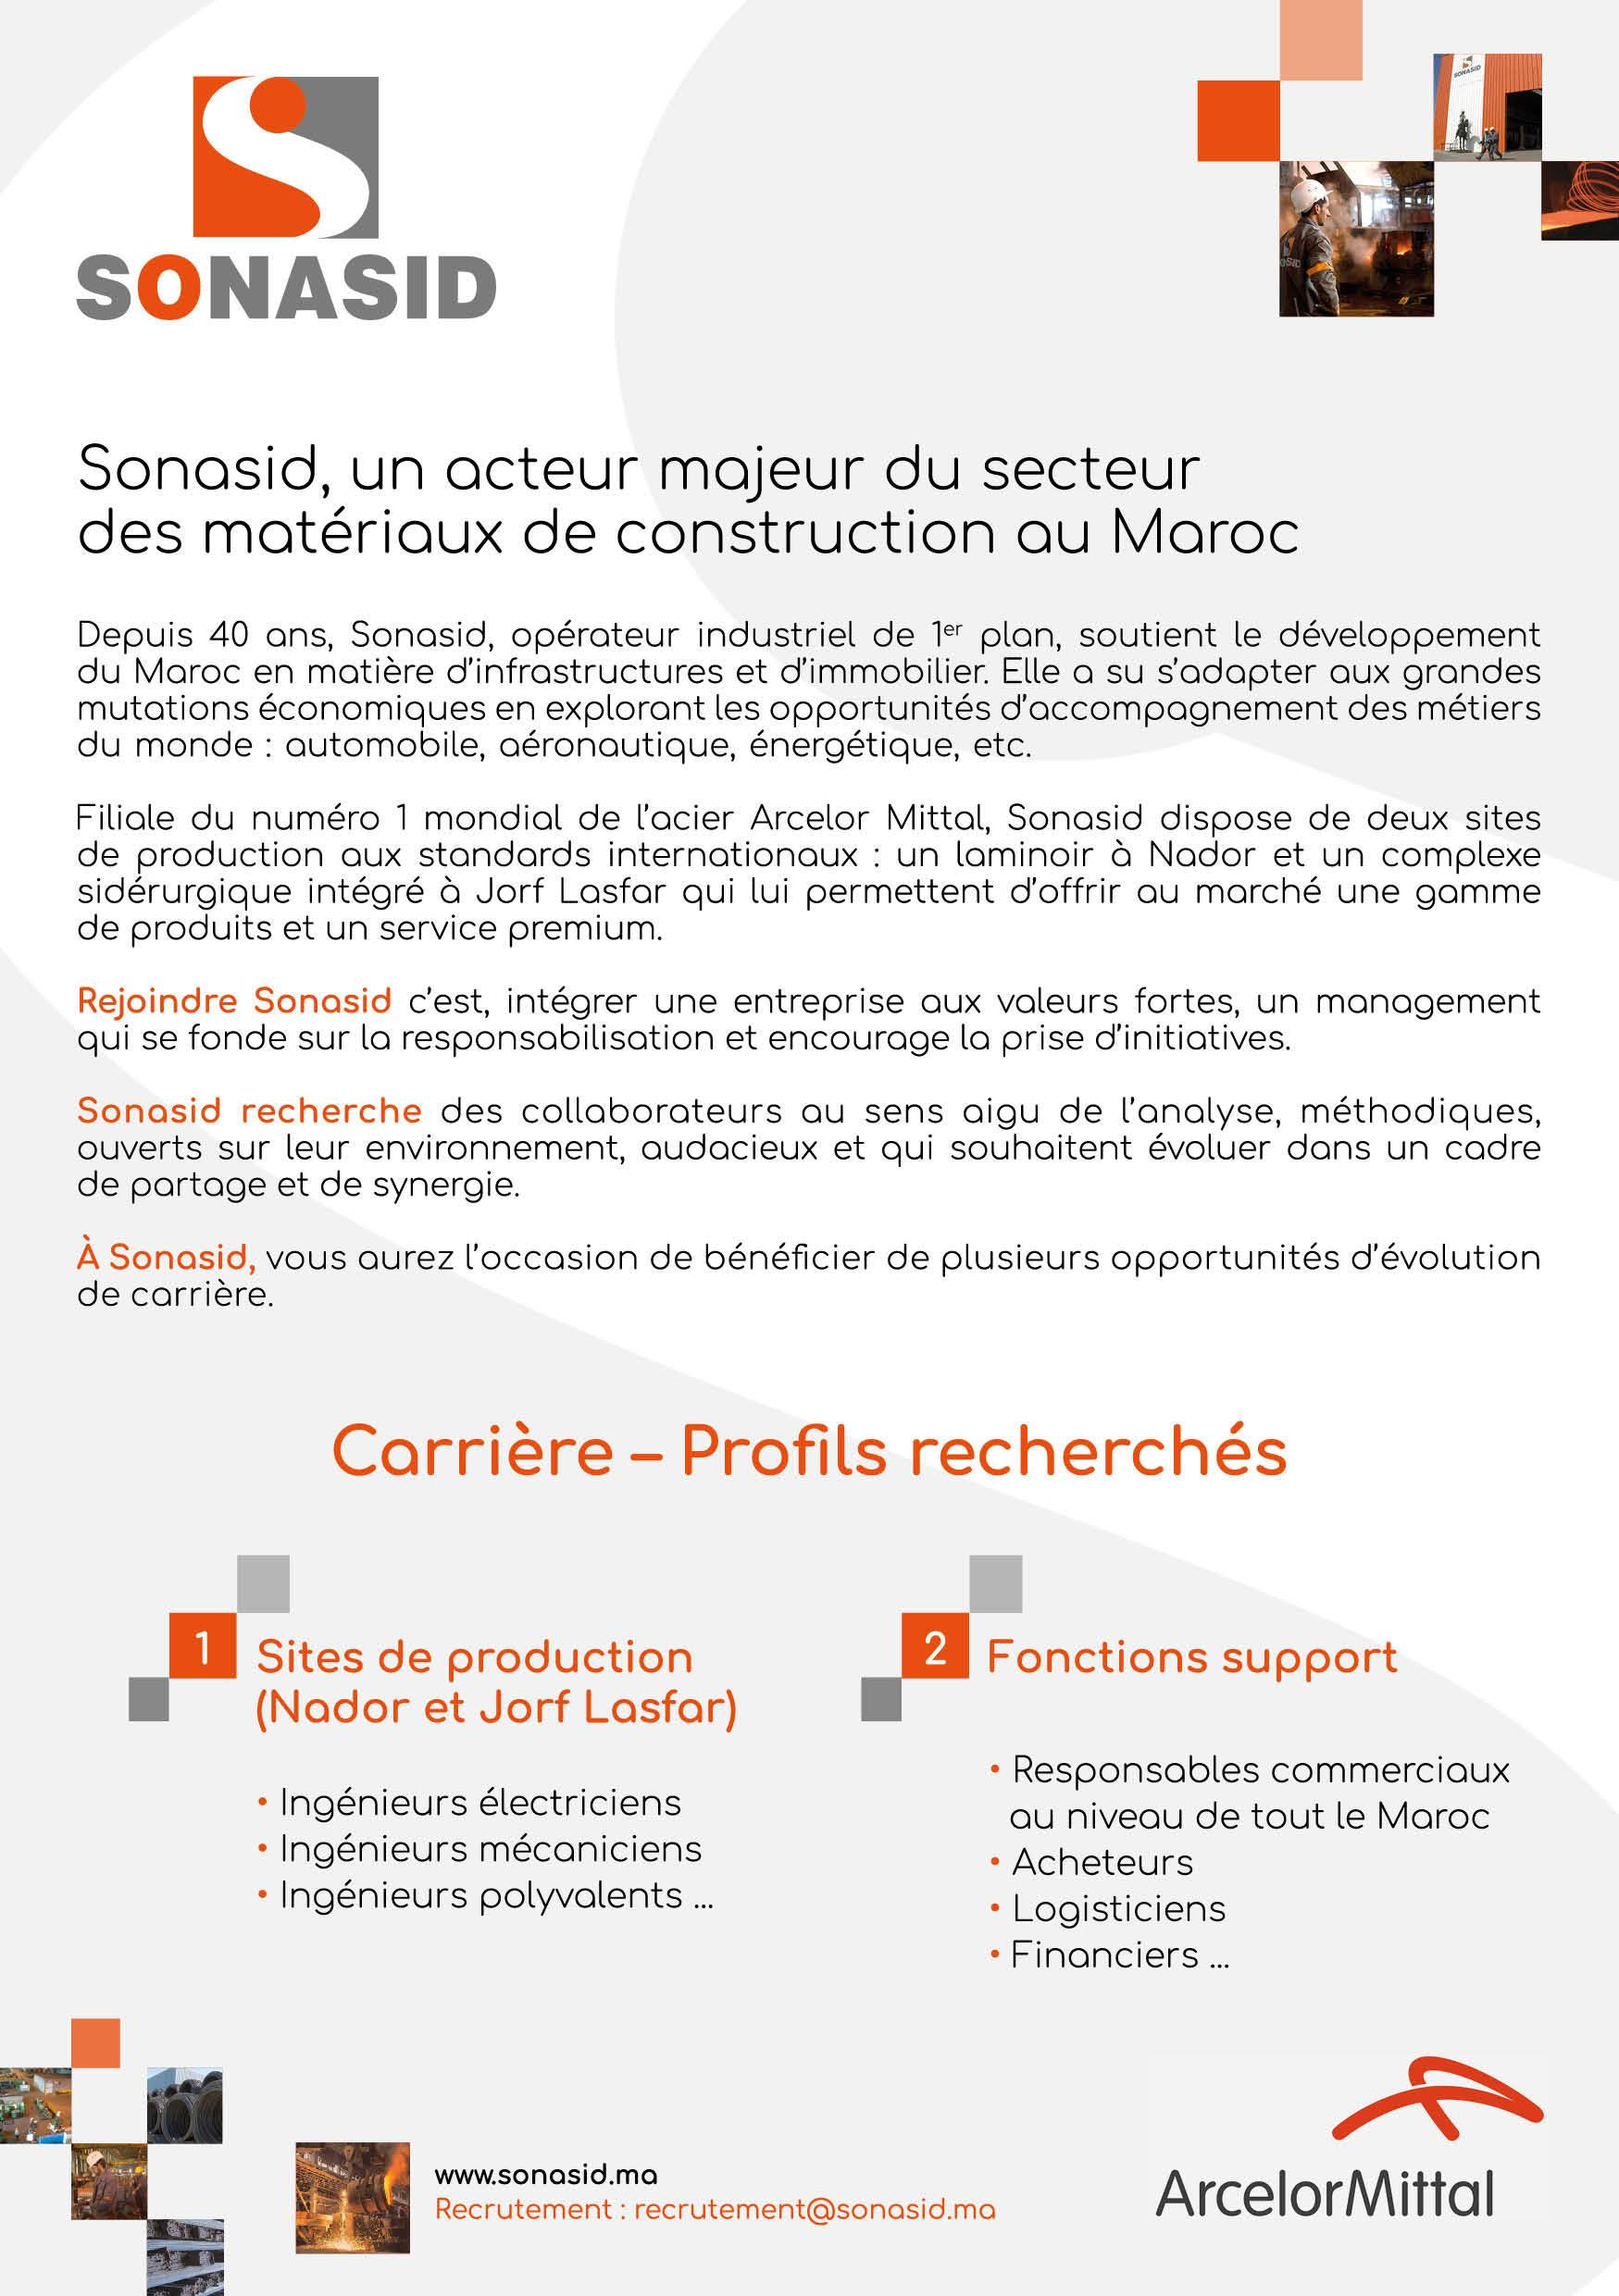 Sonasid recrutement - Dreamjob.ma